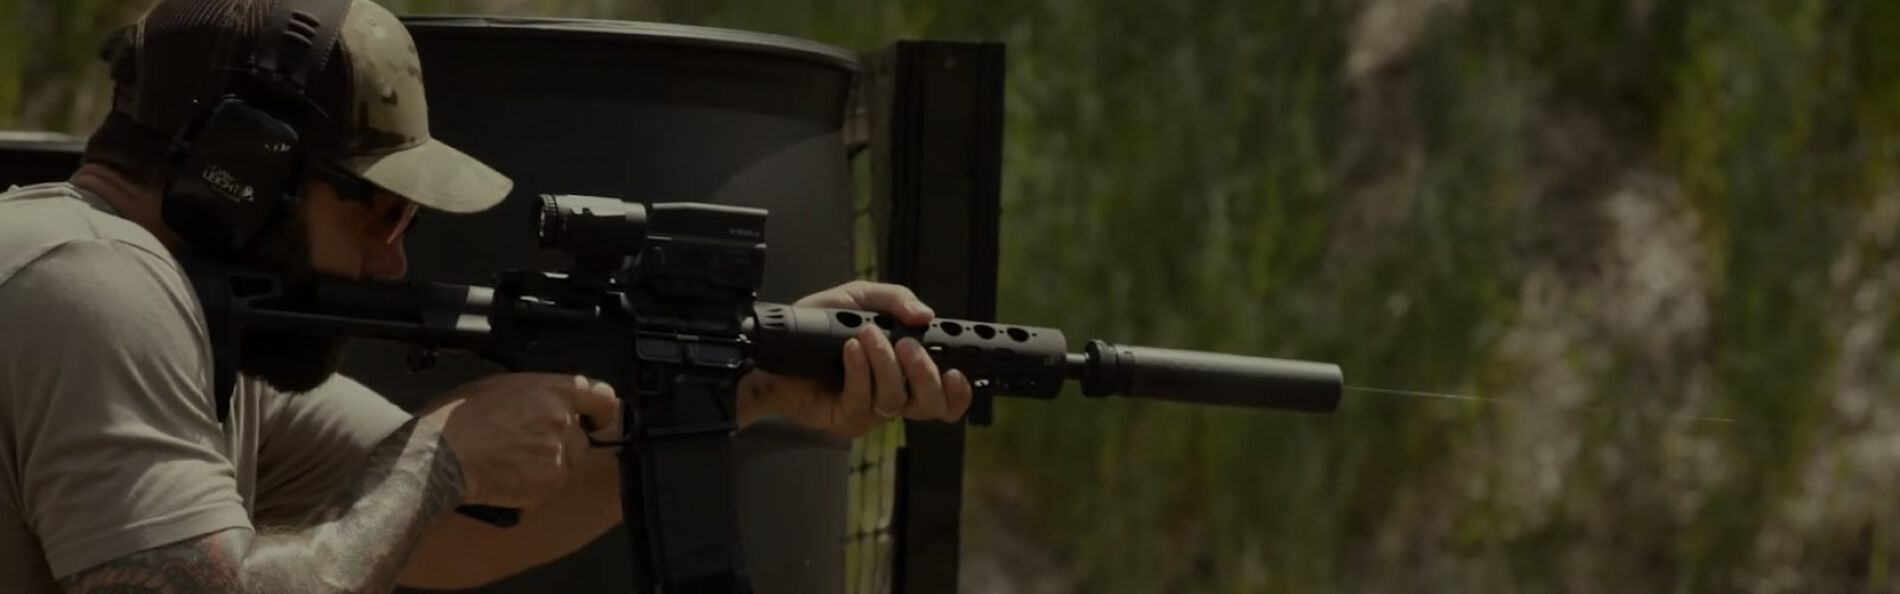 Josh Froelich Shooing a rifle at an outdoor range